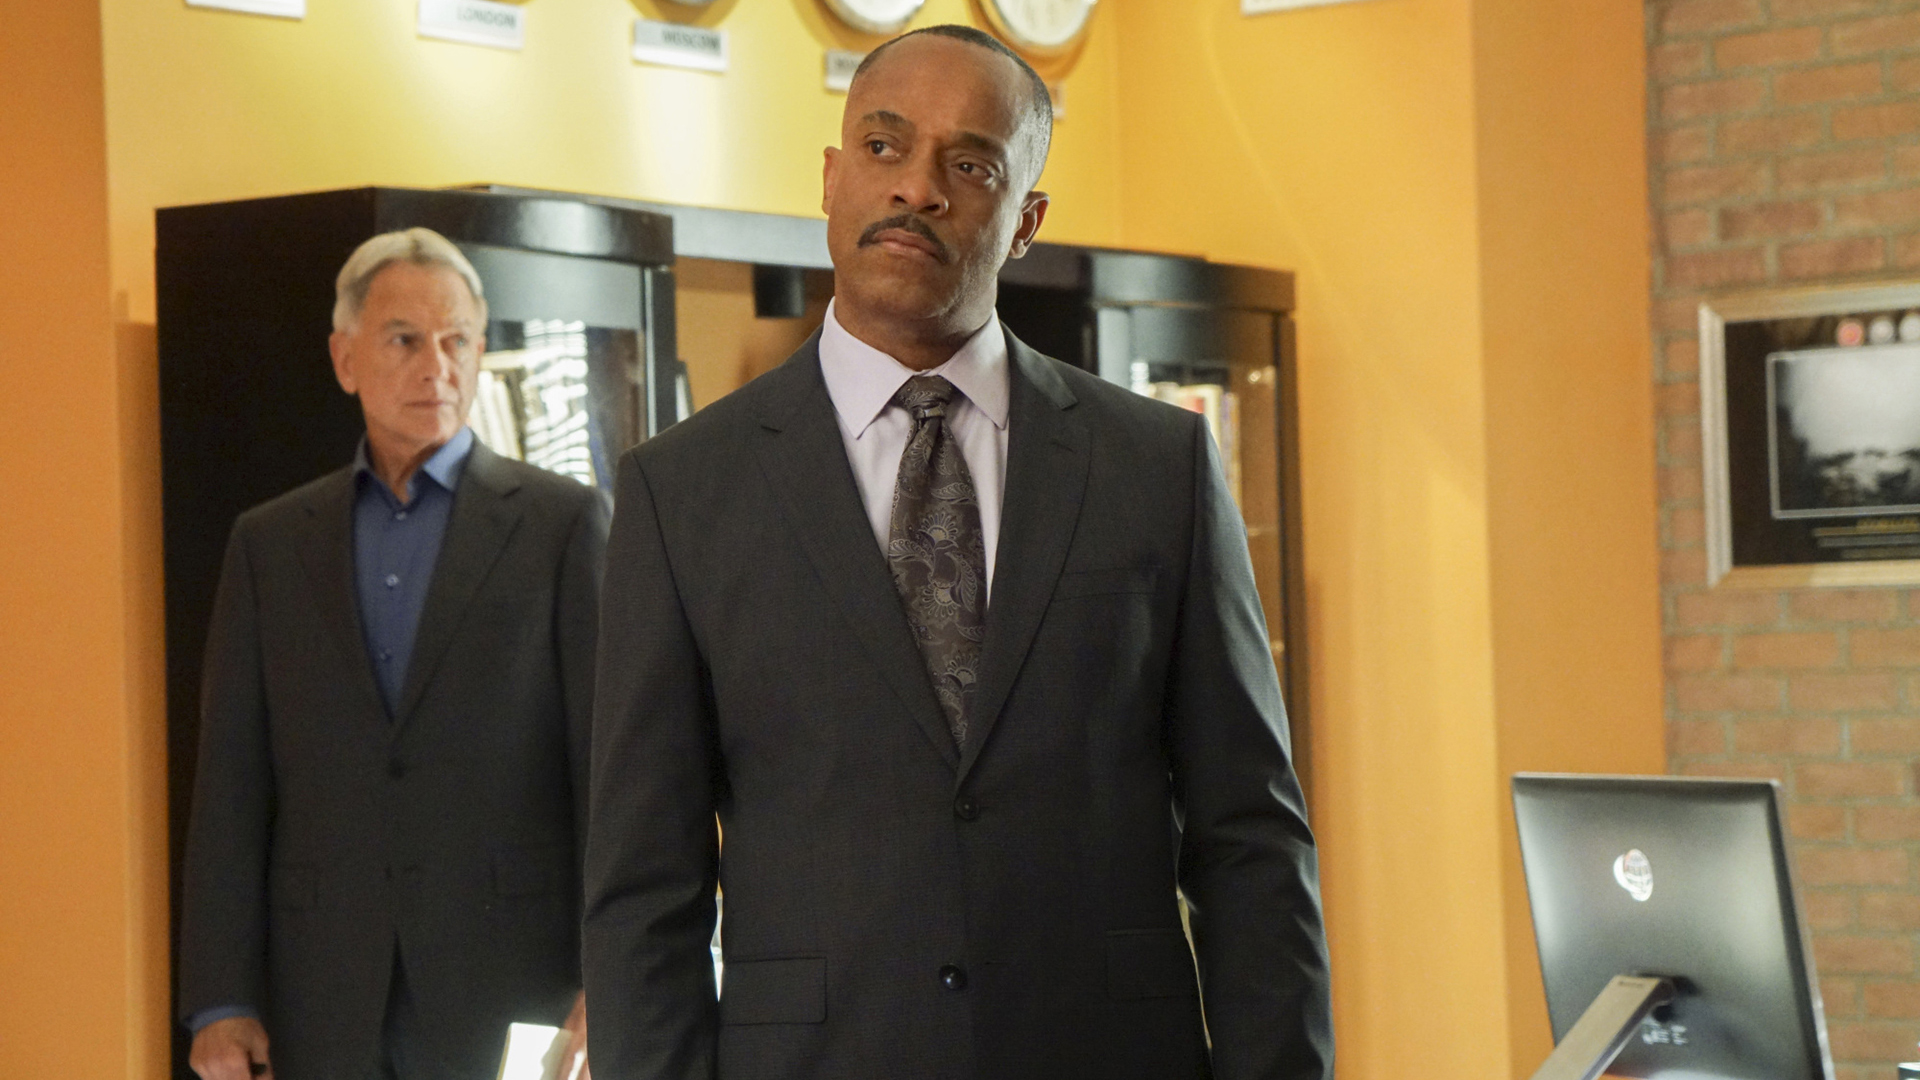 Vance, standing in front of Gibbs, absorbs the situation.